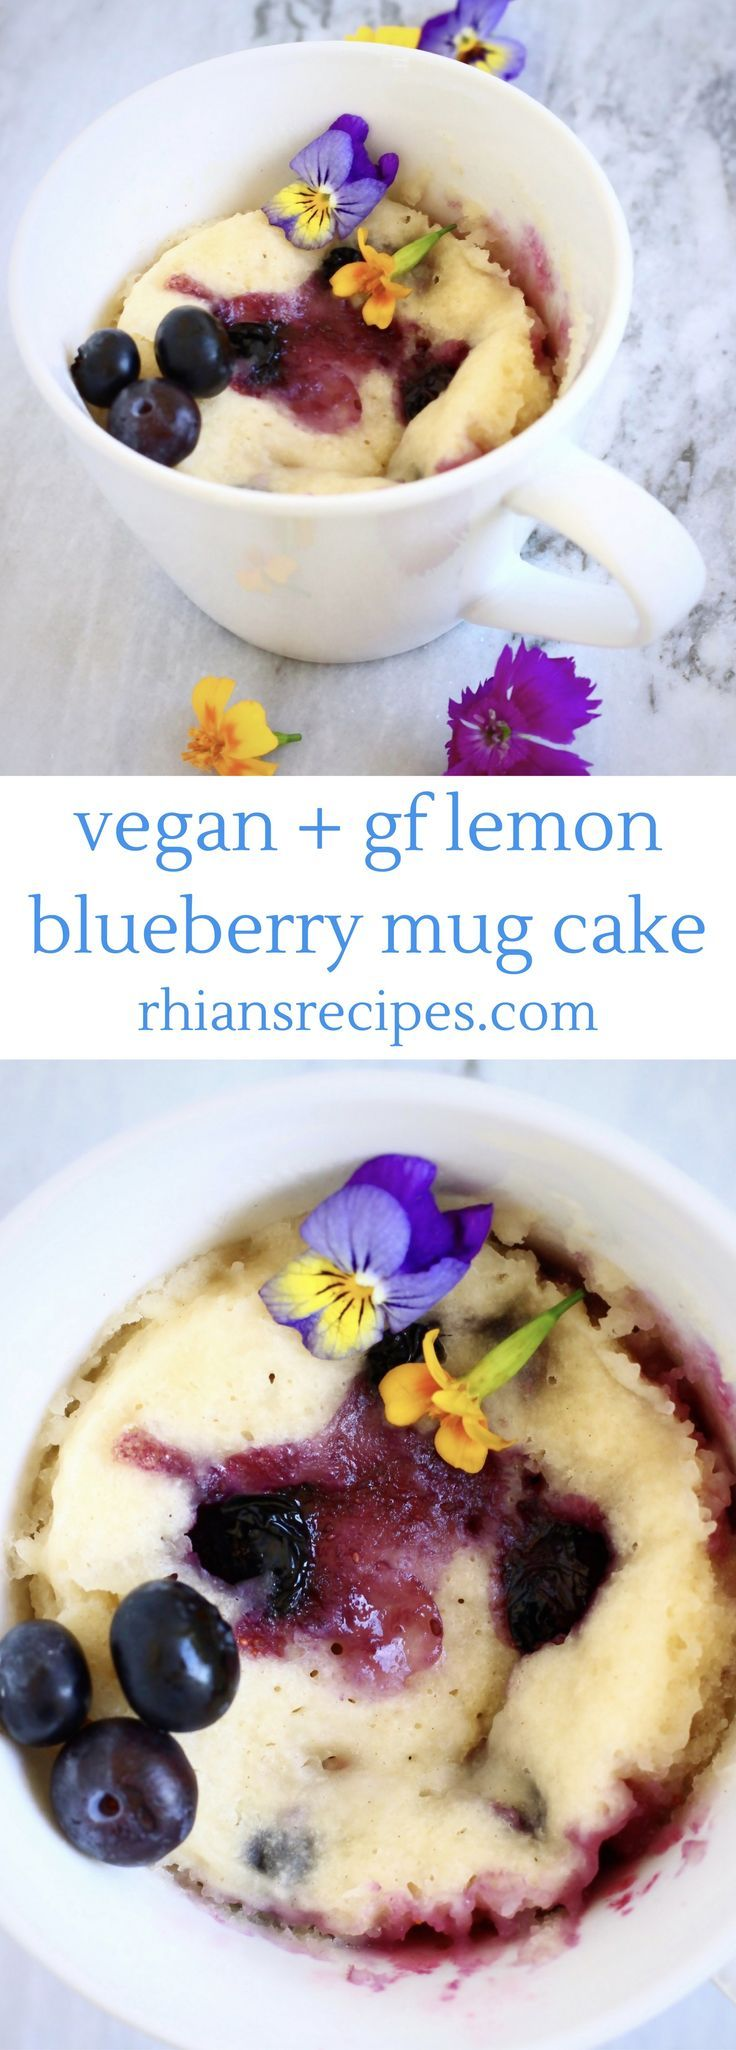 This Vegan Lemon Blueberry Microwave Mug Cake is refined sugar free, gluten-free optional and ready in just 5 minutes!